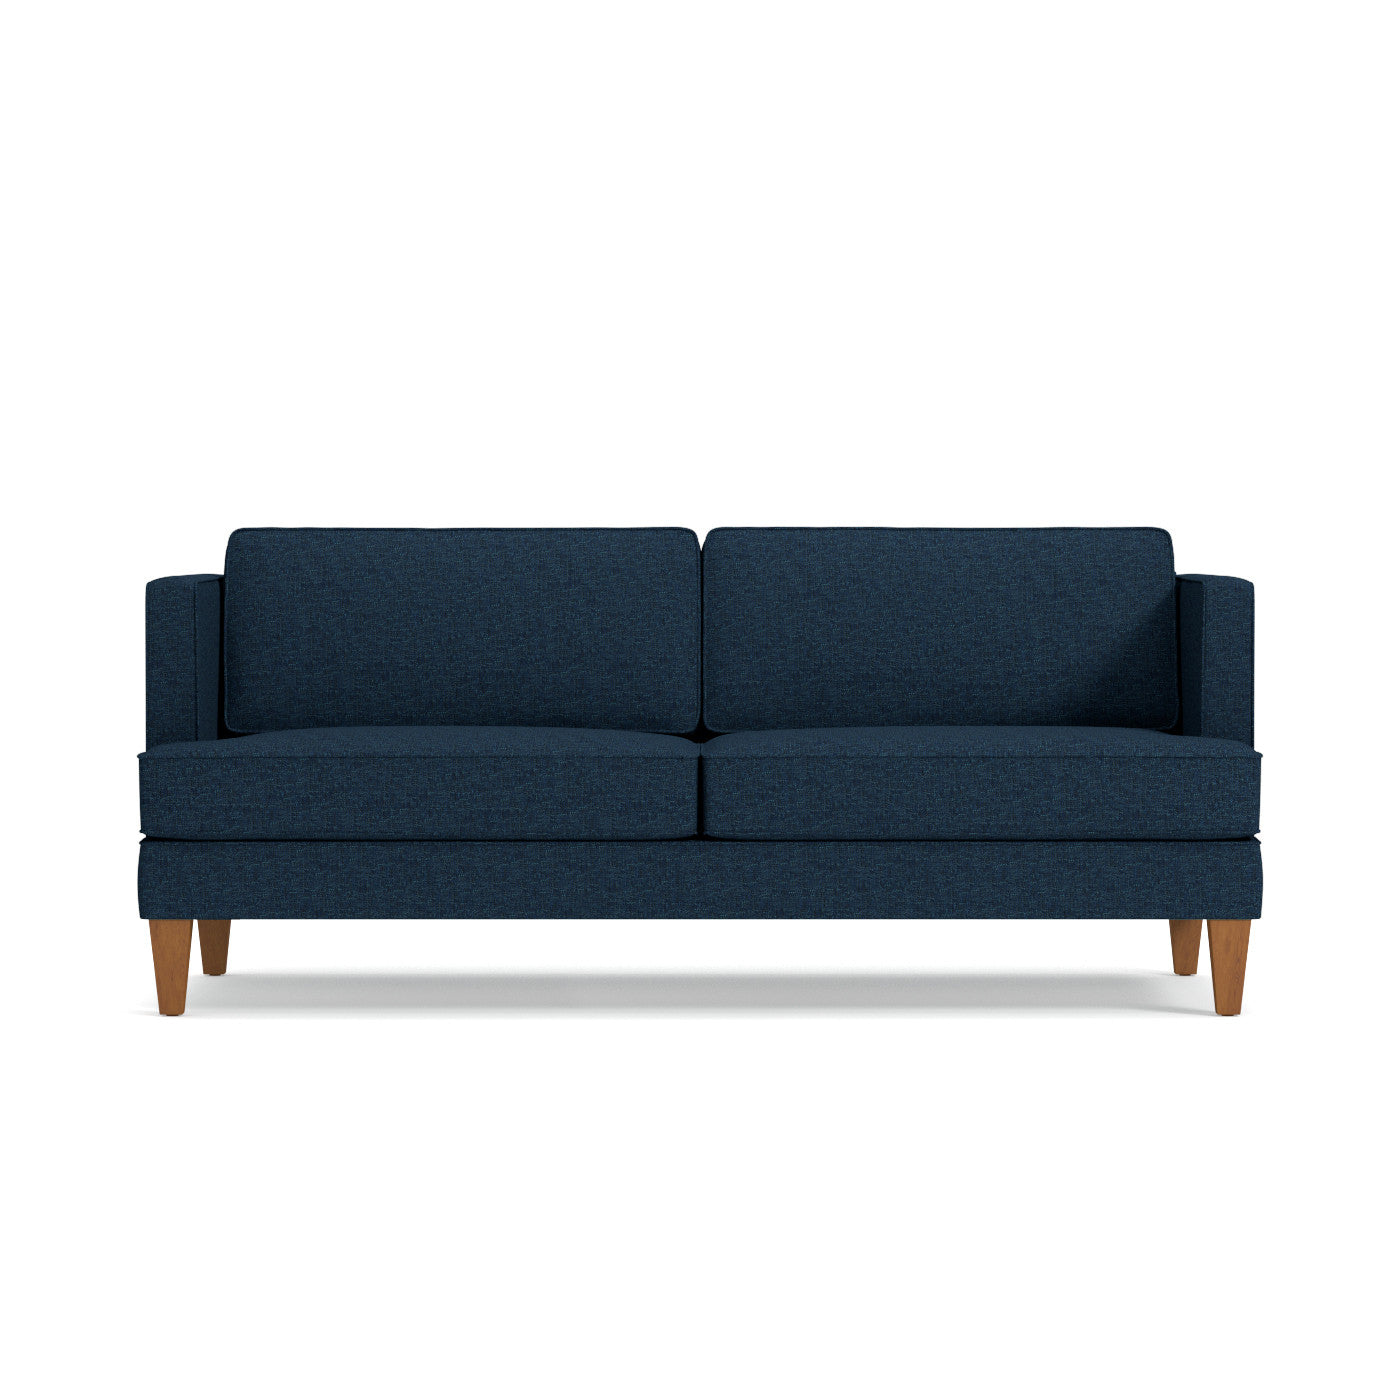 Astor Sofa from Kyle Schuneman CHOICE OF FABRICS